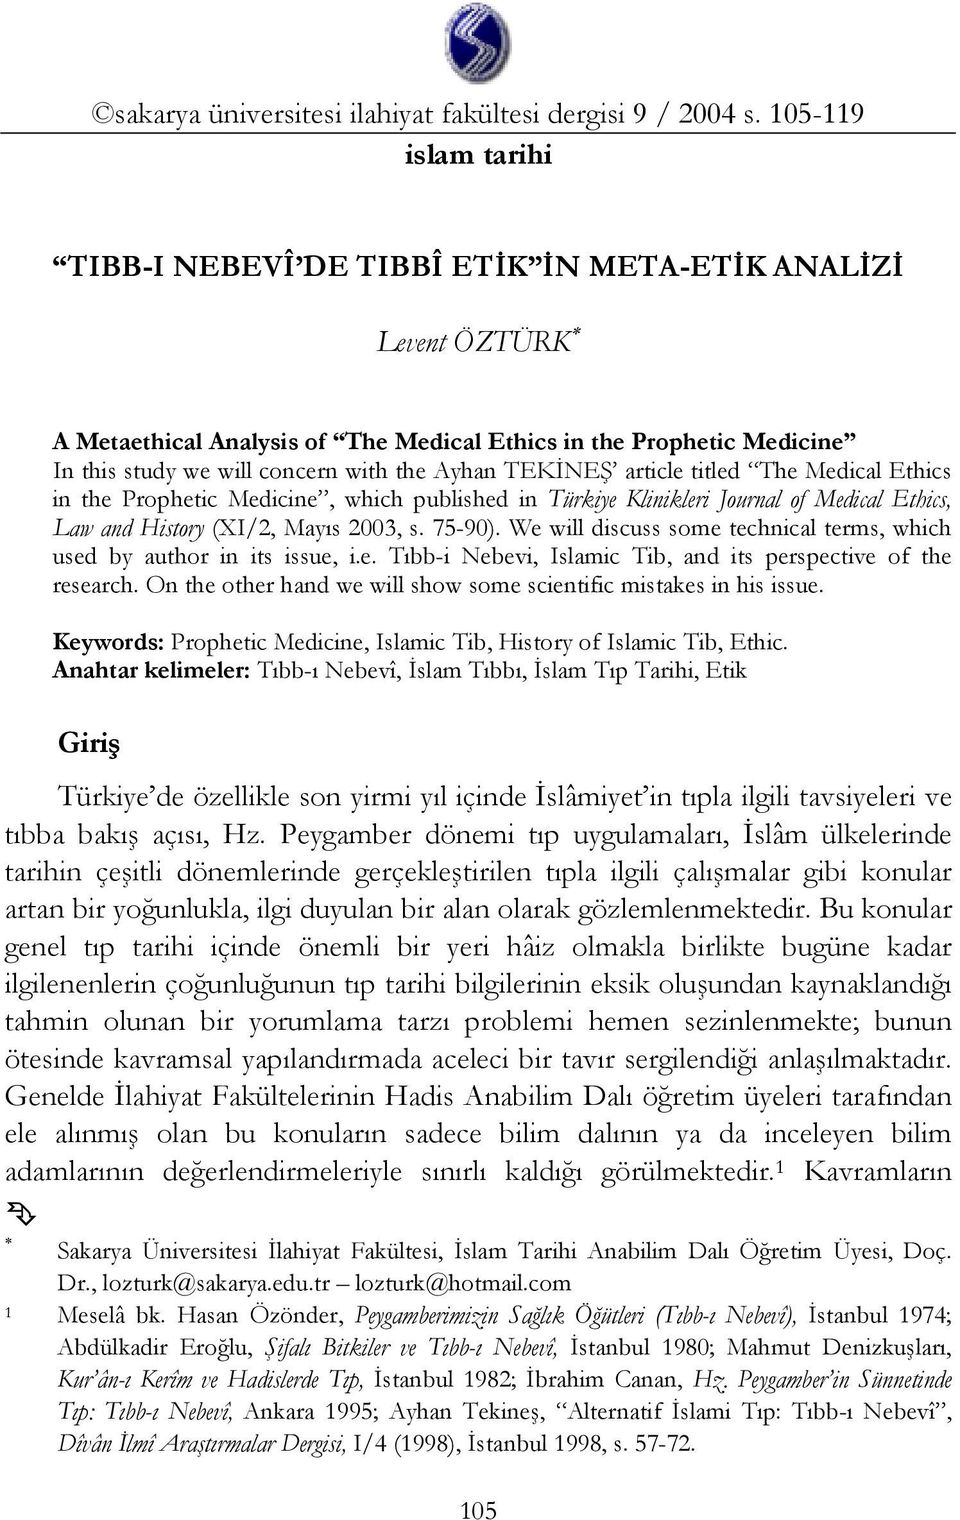 TEKİNEŞ article titled The Medical Ethics in the Prophetic Medicine, which published in Türkiye Klinikleri Journal of Medical Ethics, Law and History (XI/2, Mayıs 2003, s. 75-90).